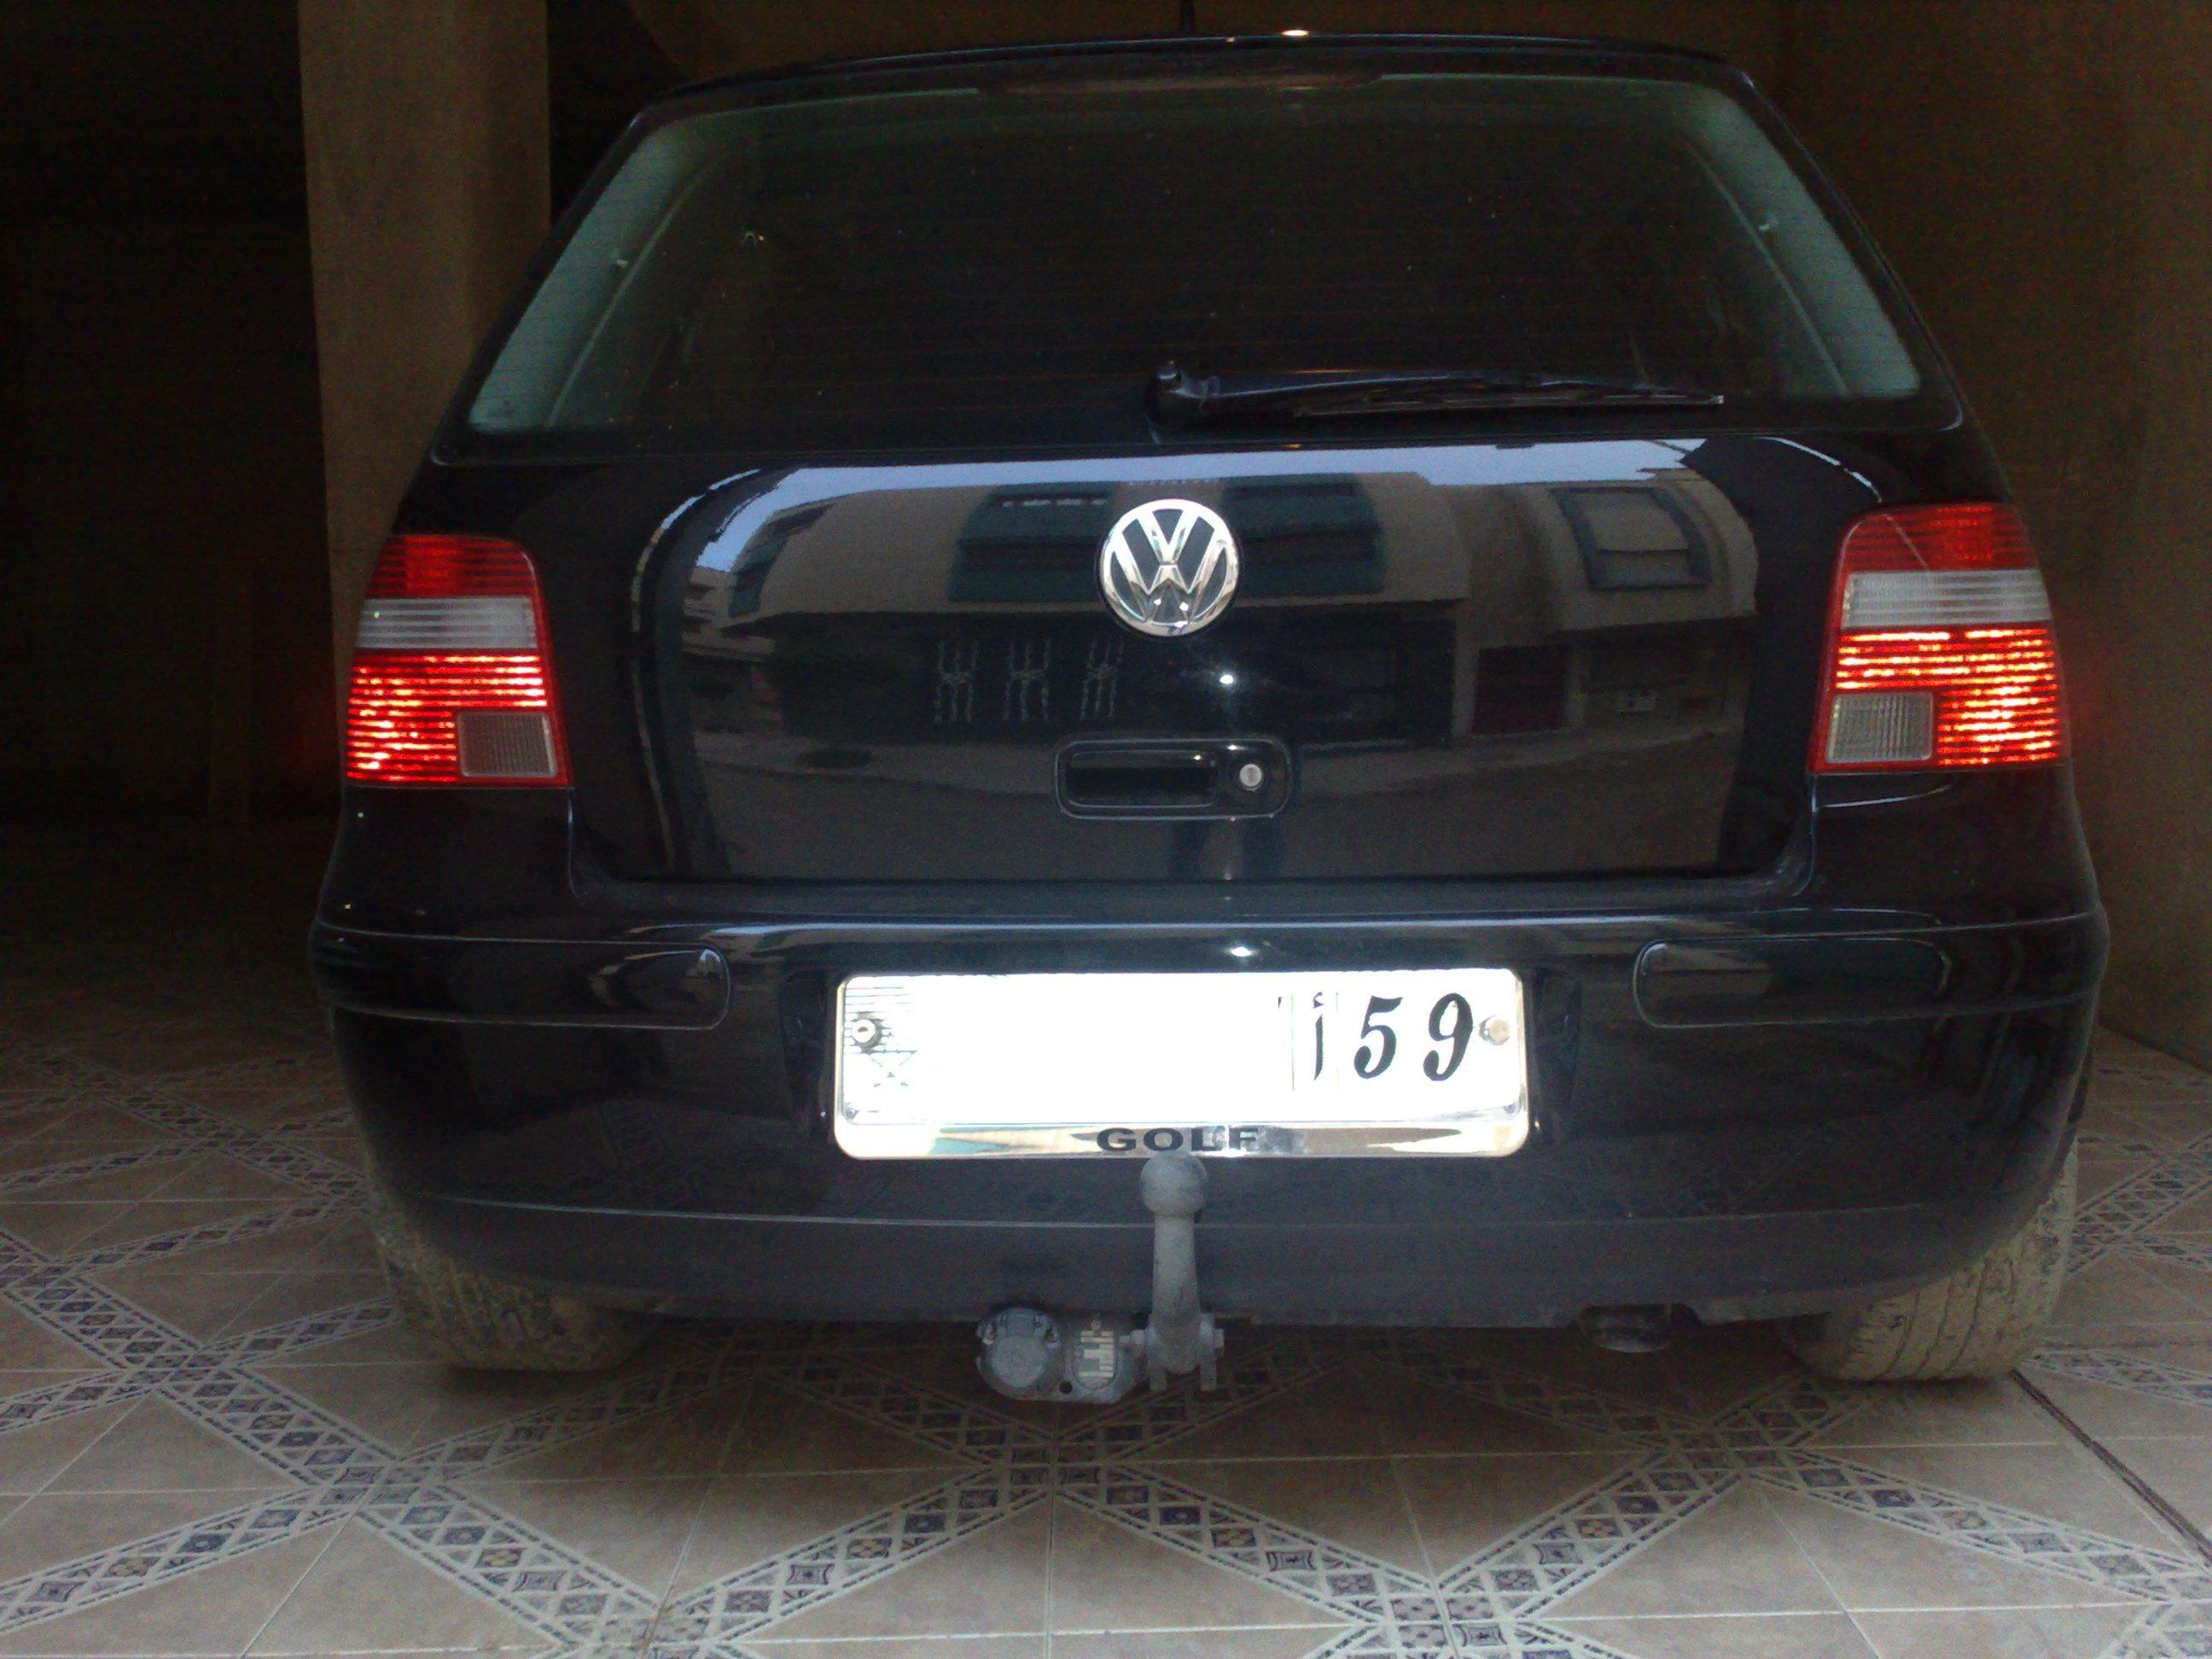 golf iv tdi 115 de anas garage des golf iv tdi 115 forum volkswagen golf iv. Black Bedroom Furniture Sets. Home Design Ideas